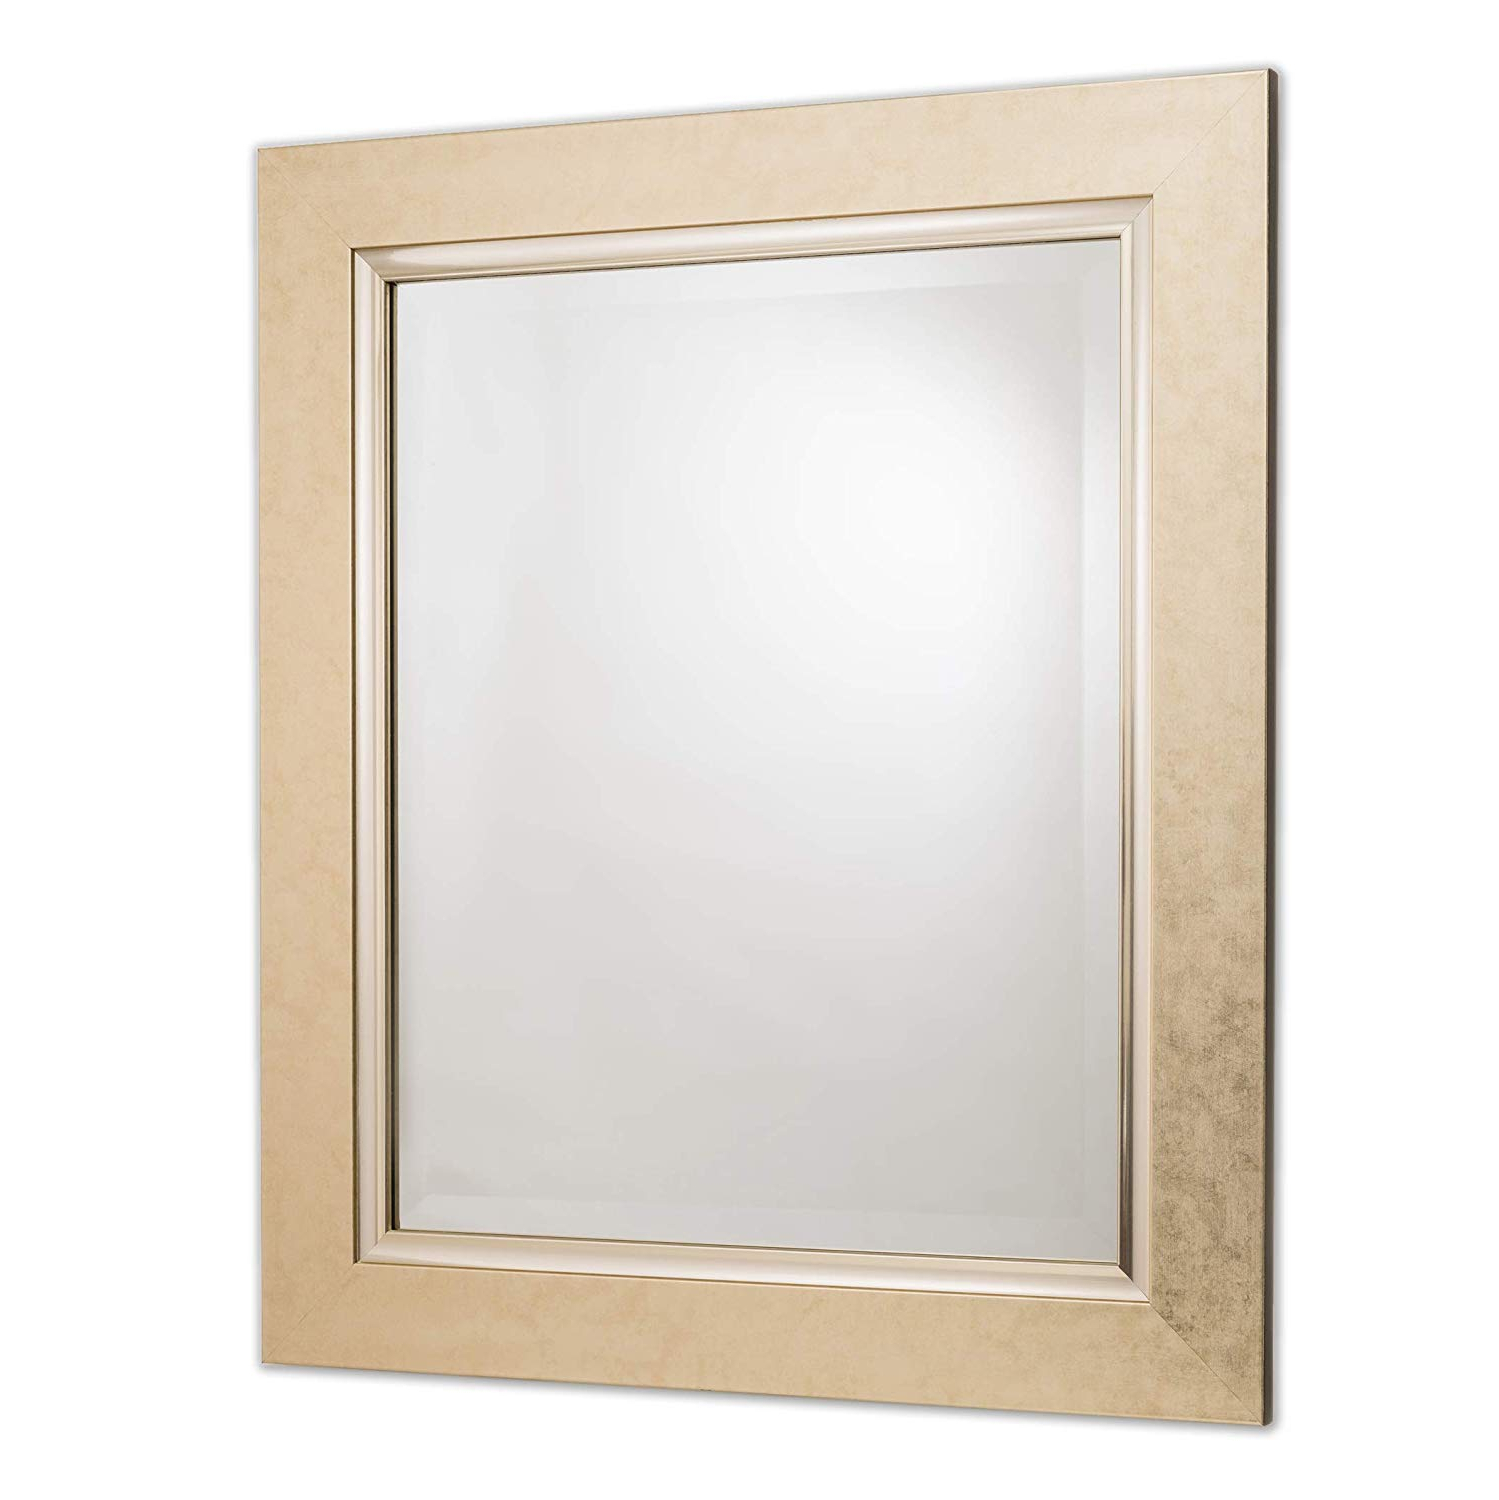 """Most Up To Date Wall Mirror Decorative Vanity – Bathroom Rectangular Vintage Gold Beveled Frame 22""""x28"""" In Frames For Bathroom Wall Mirrors (View 16 of 20)"""